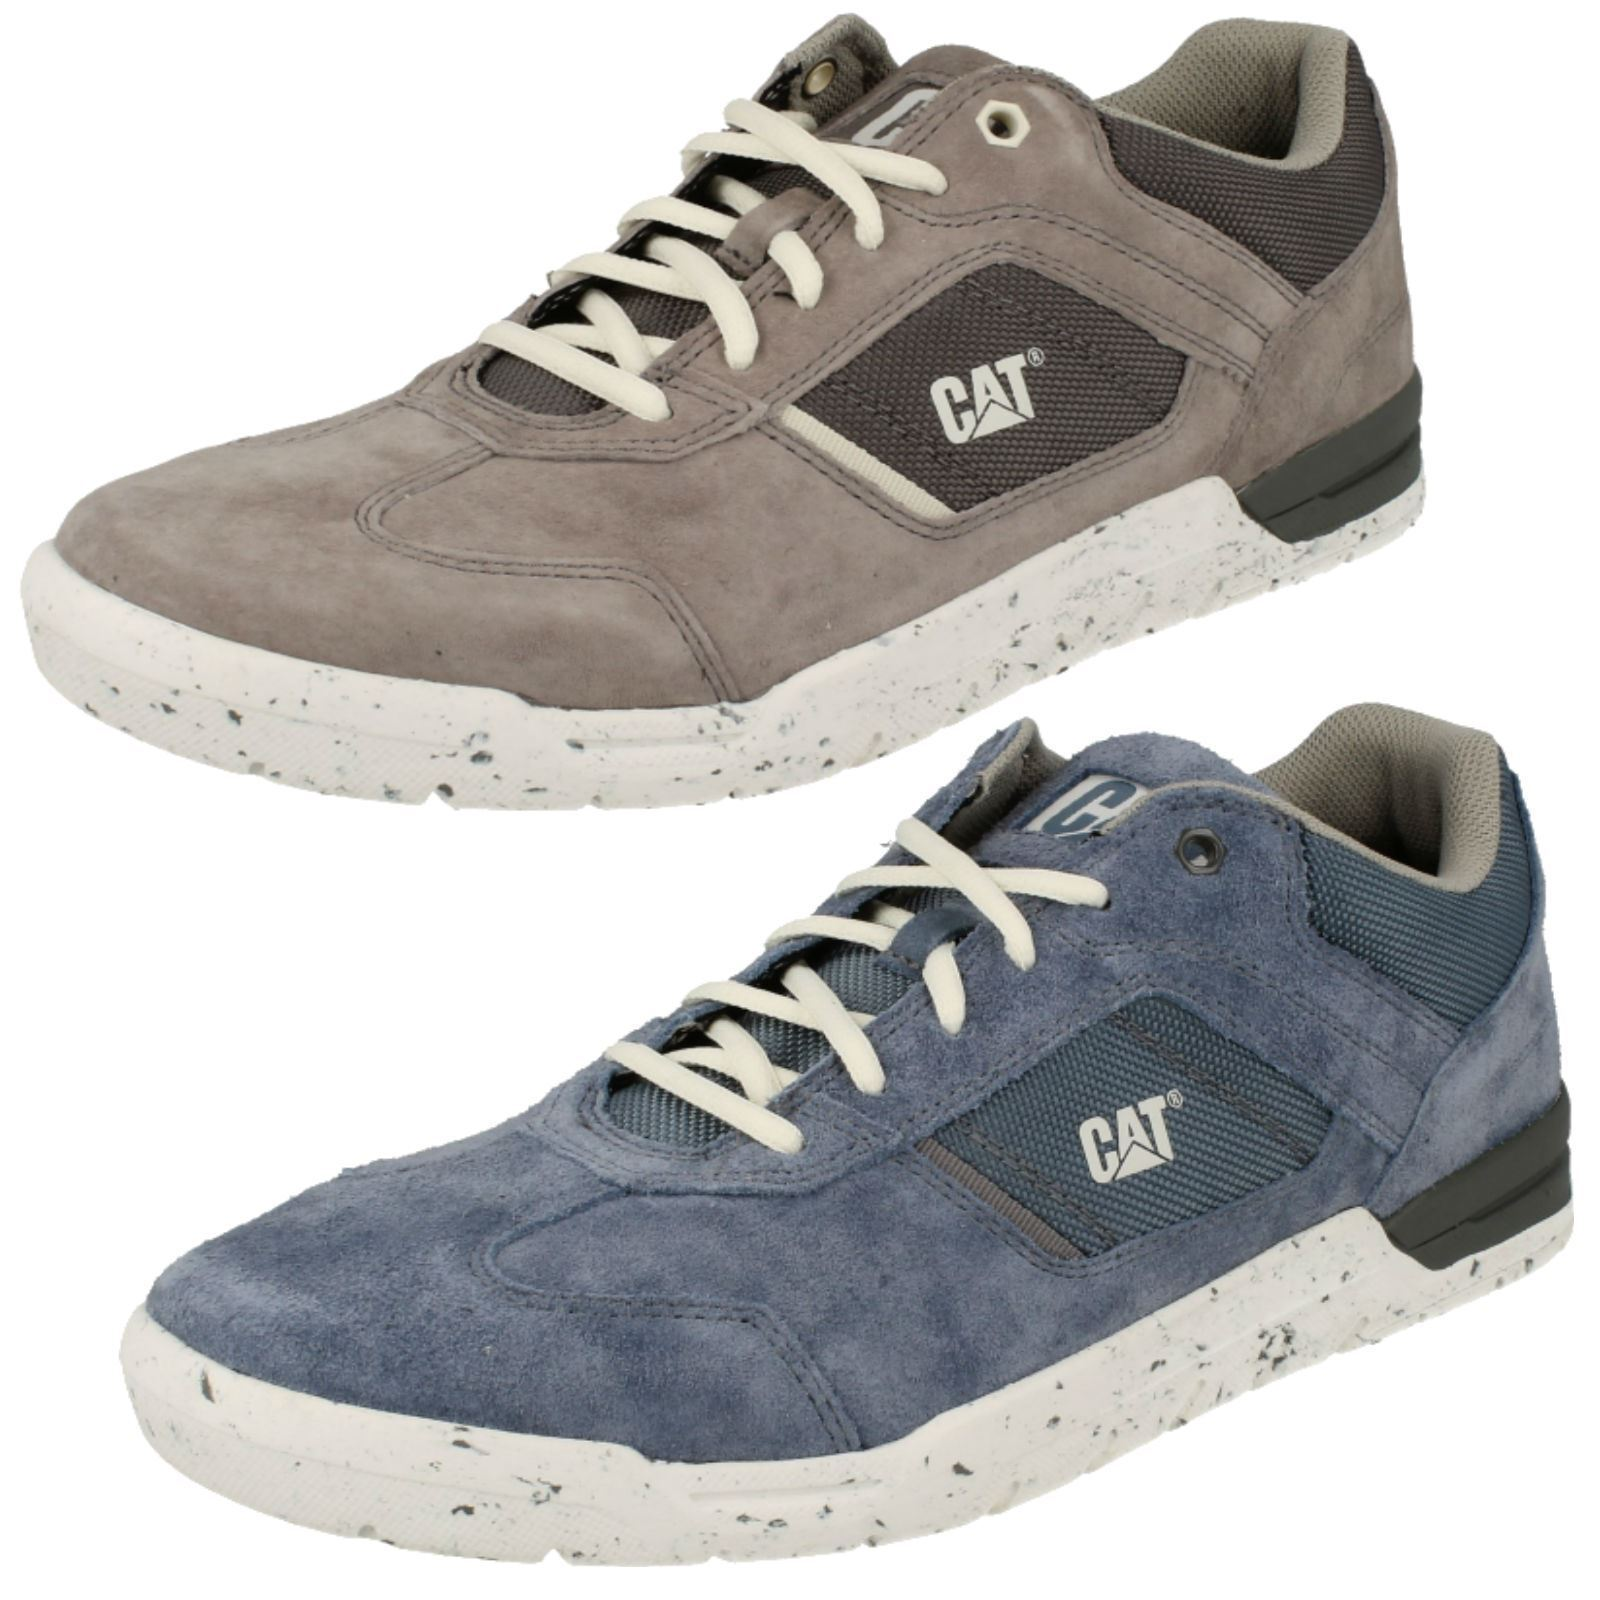 Caterpillar 'Chasm' Men's Leather Suede and Textile Lace Up Casual Trainers